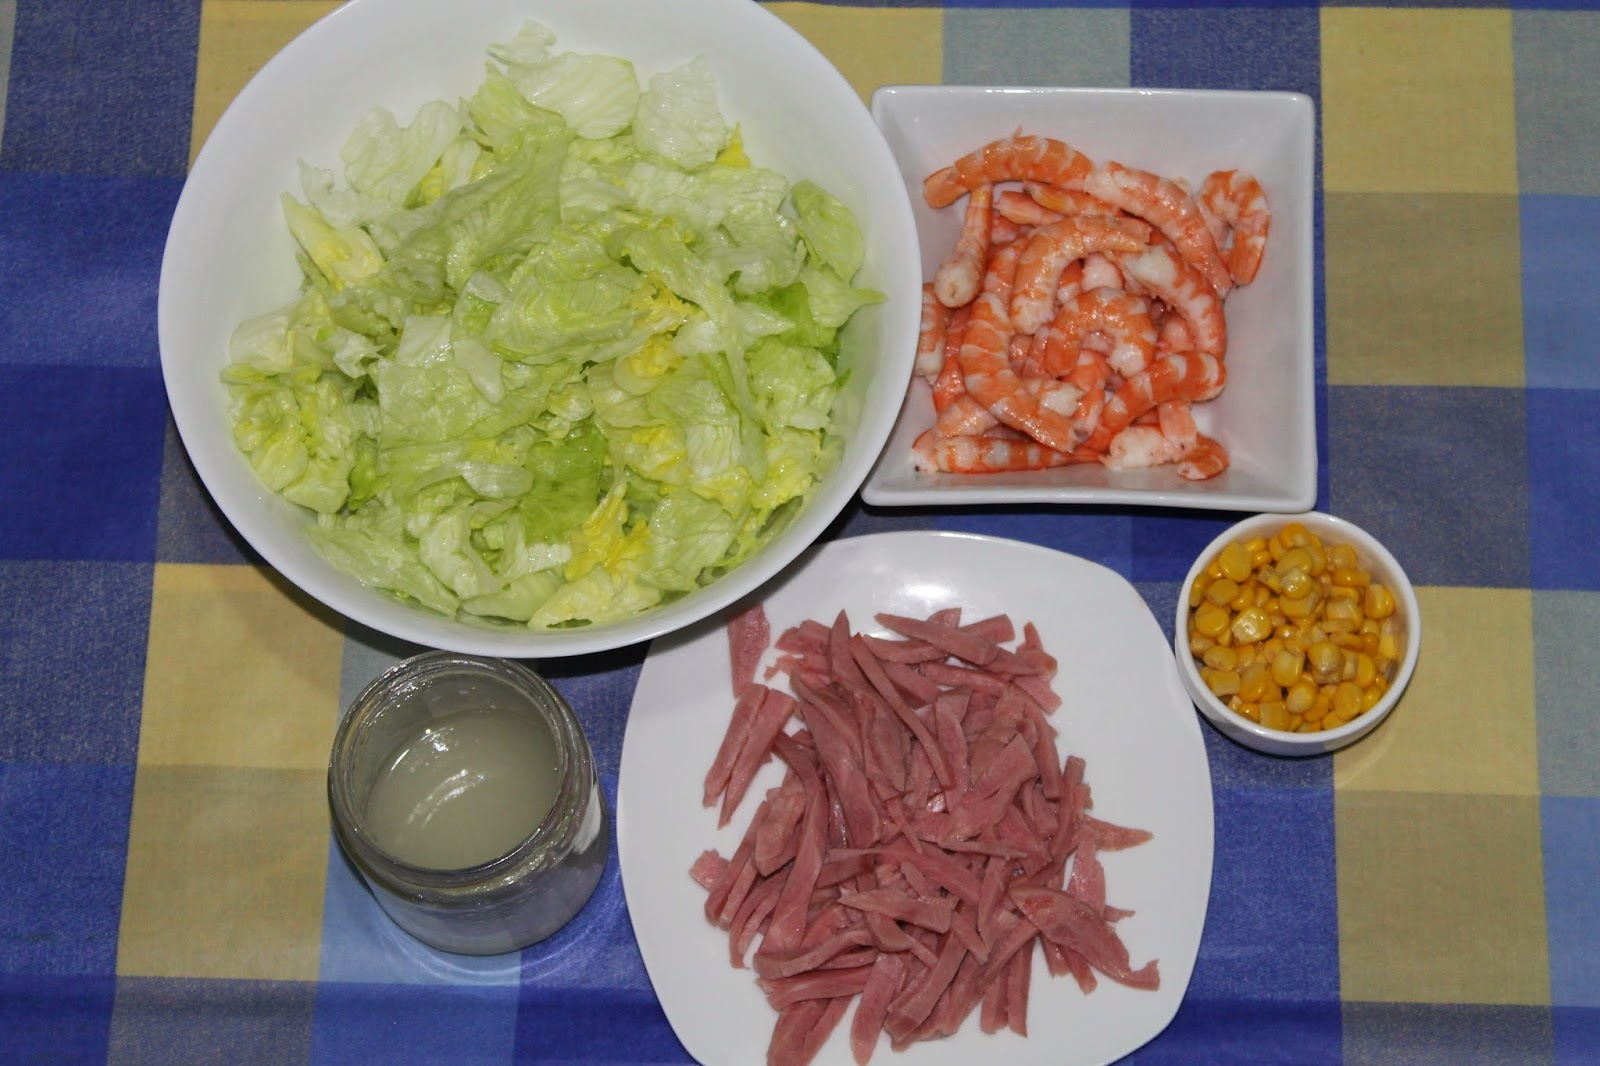 ingredientes-para-ensalada-china-blog-justy-entre-fogones-y-copla.jpg